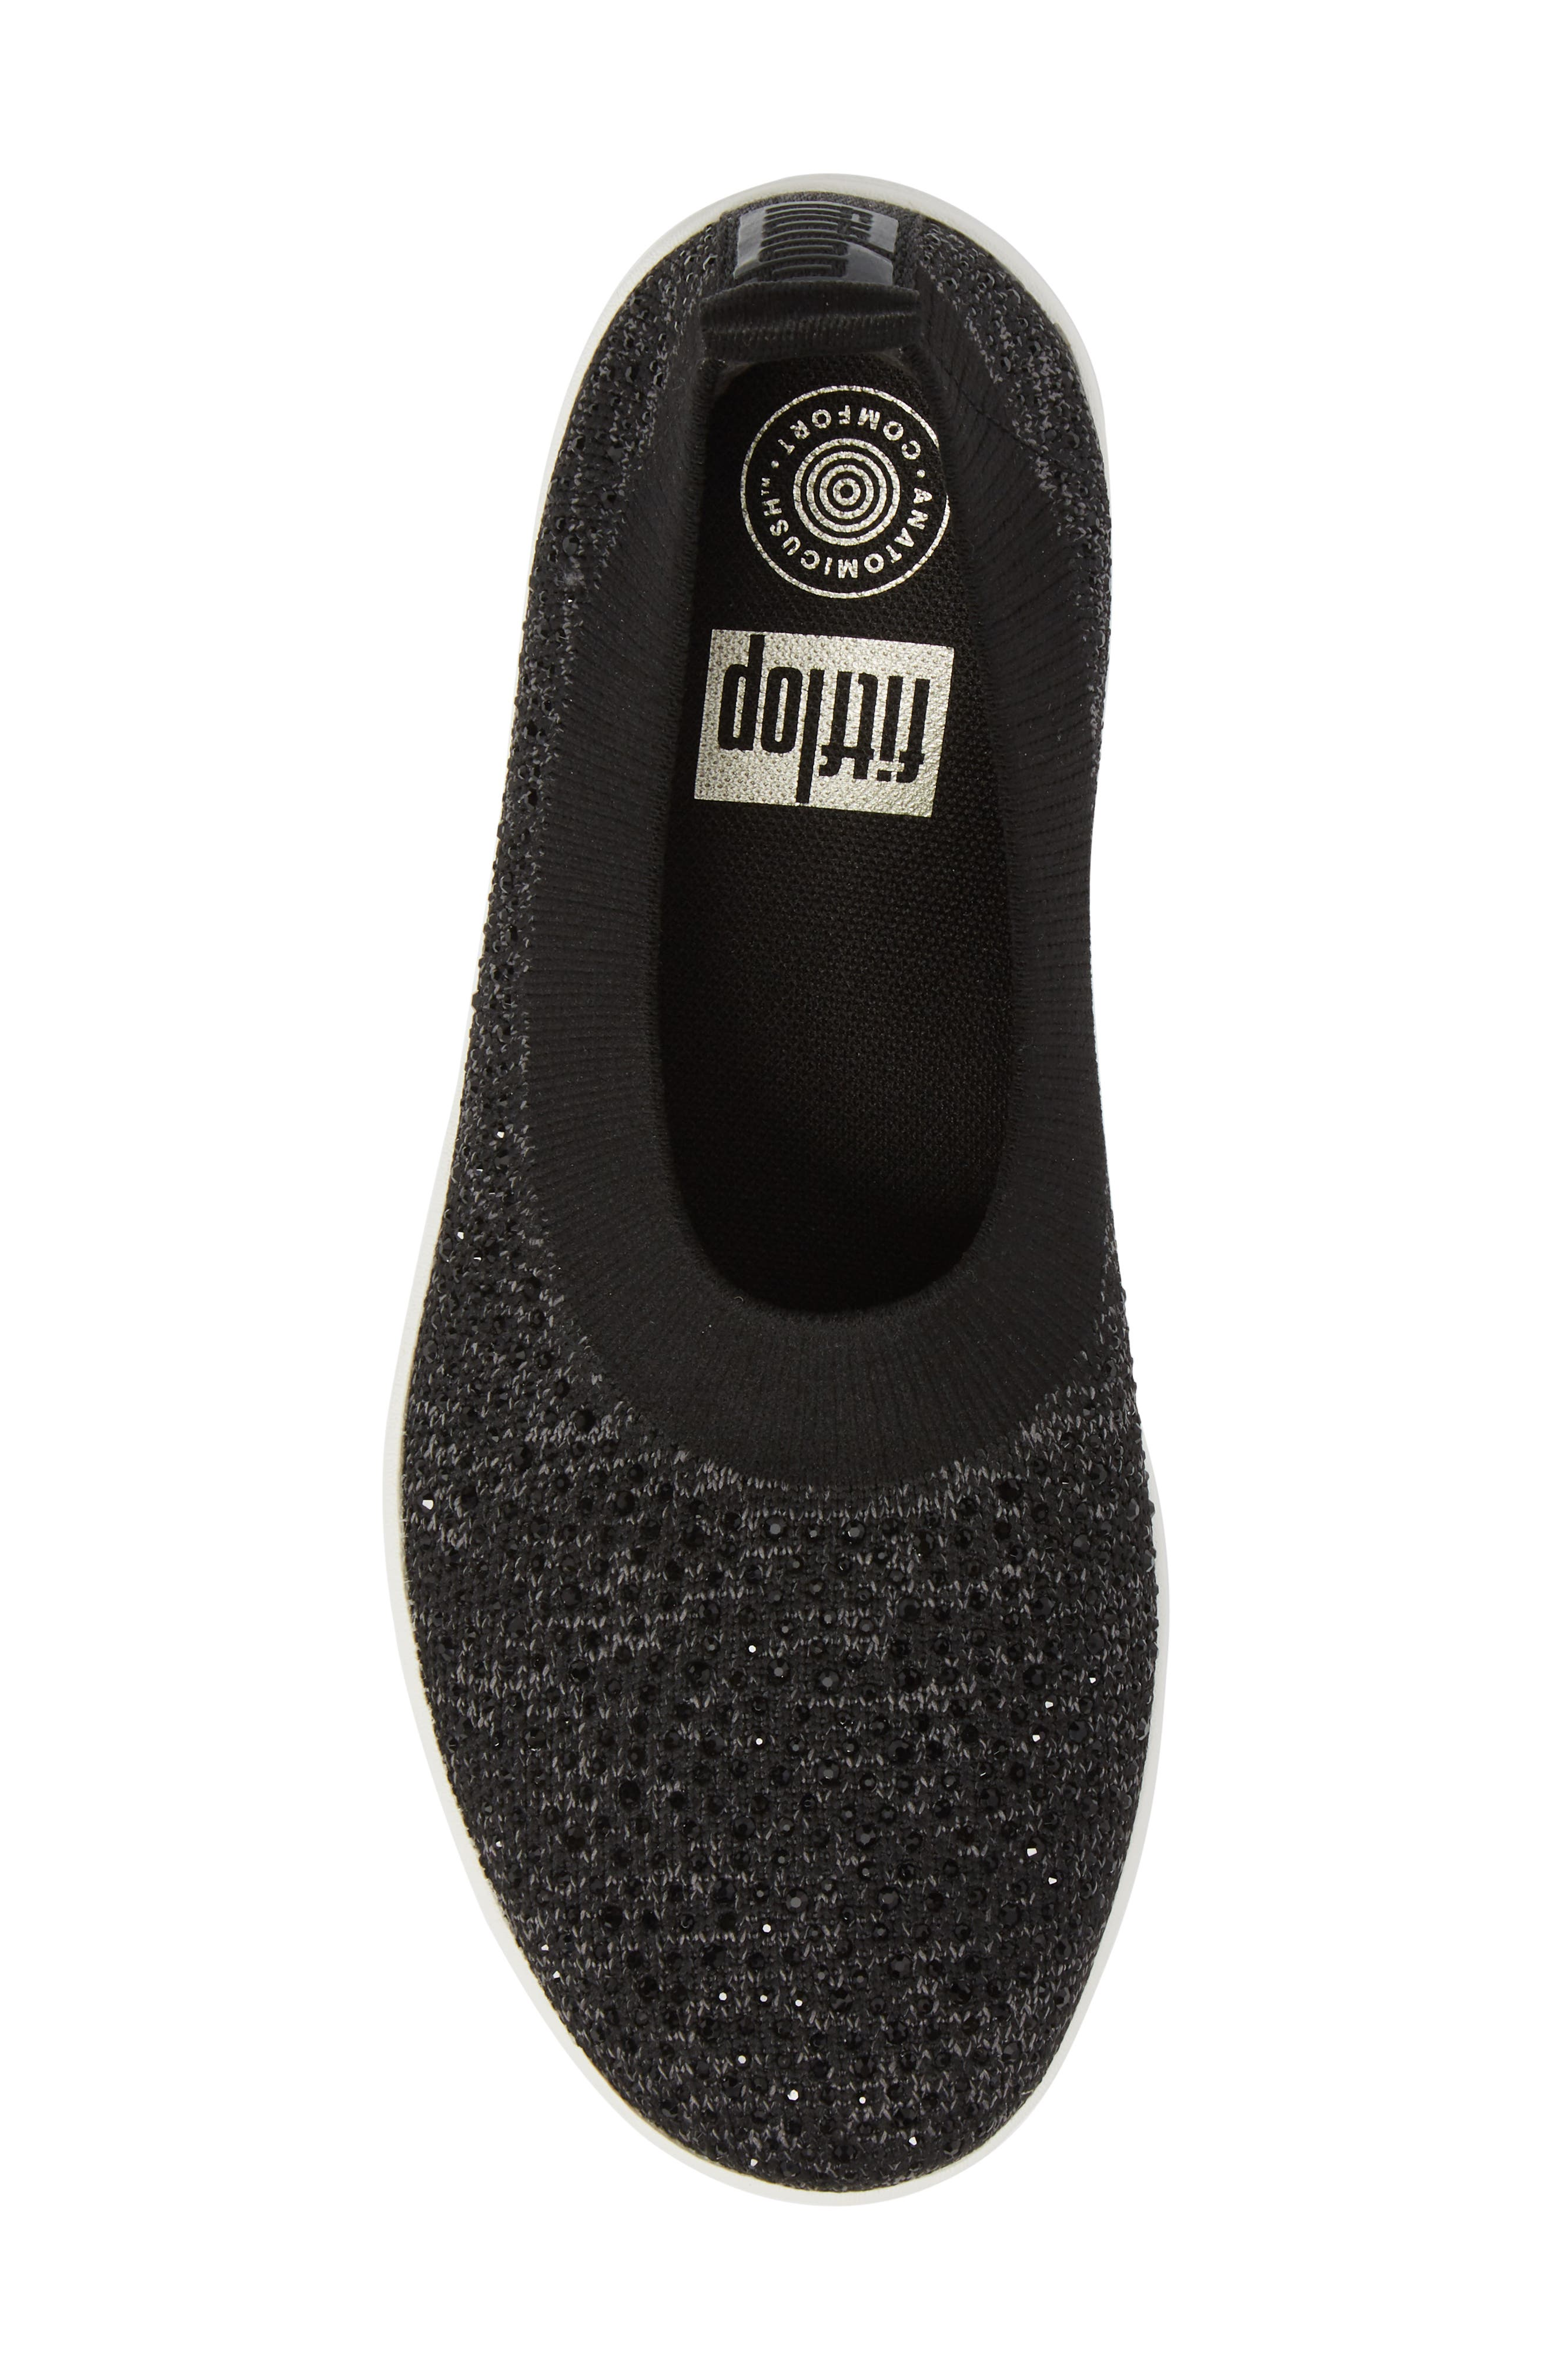 Uberknit Slip-On Sneaker,                             Alternate thumbnail 5, color,                             BLACK/ SOFT GREY